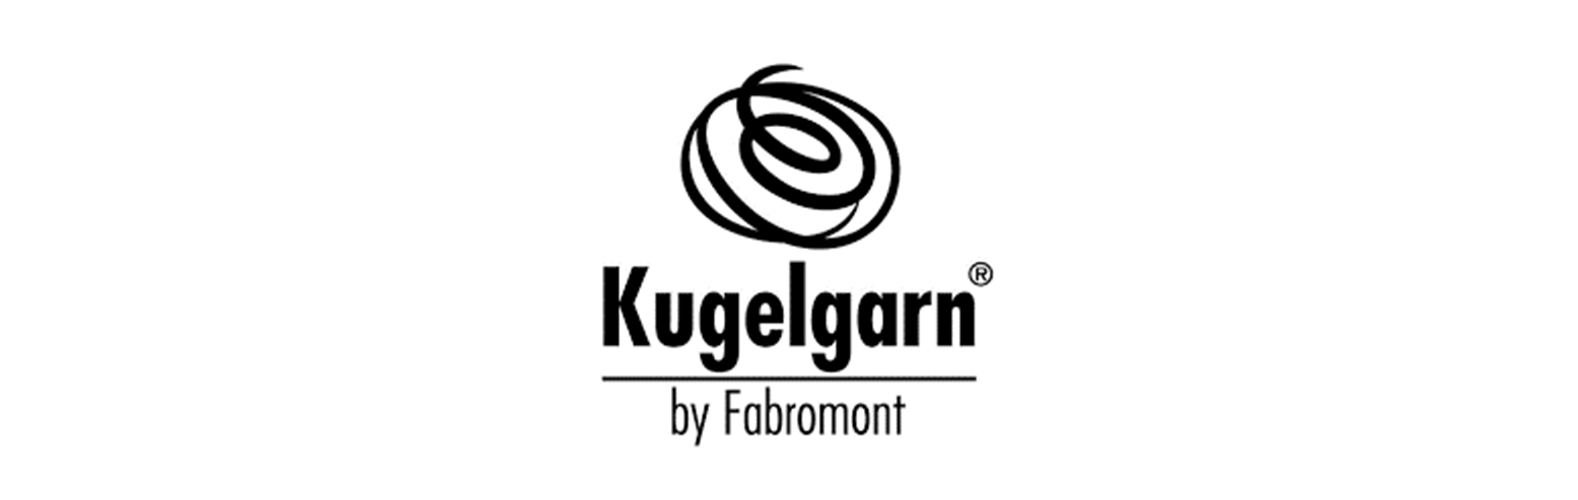 /file_data/flextemp/images/kugelgarn-logo.png